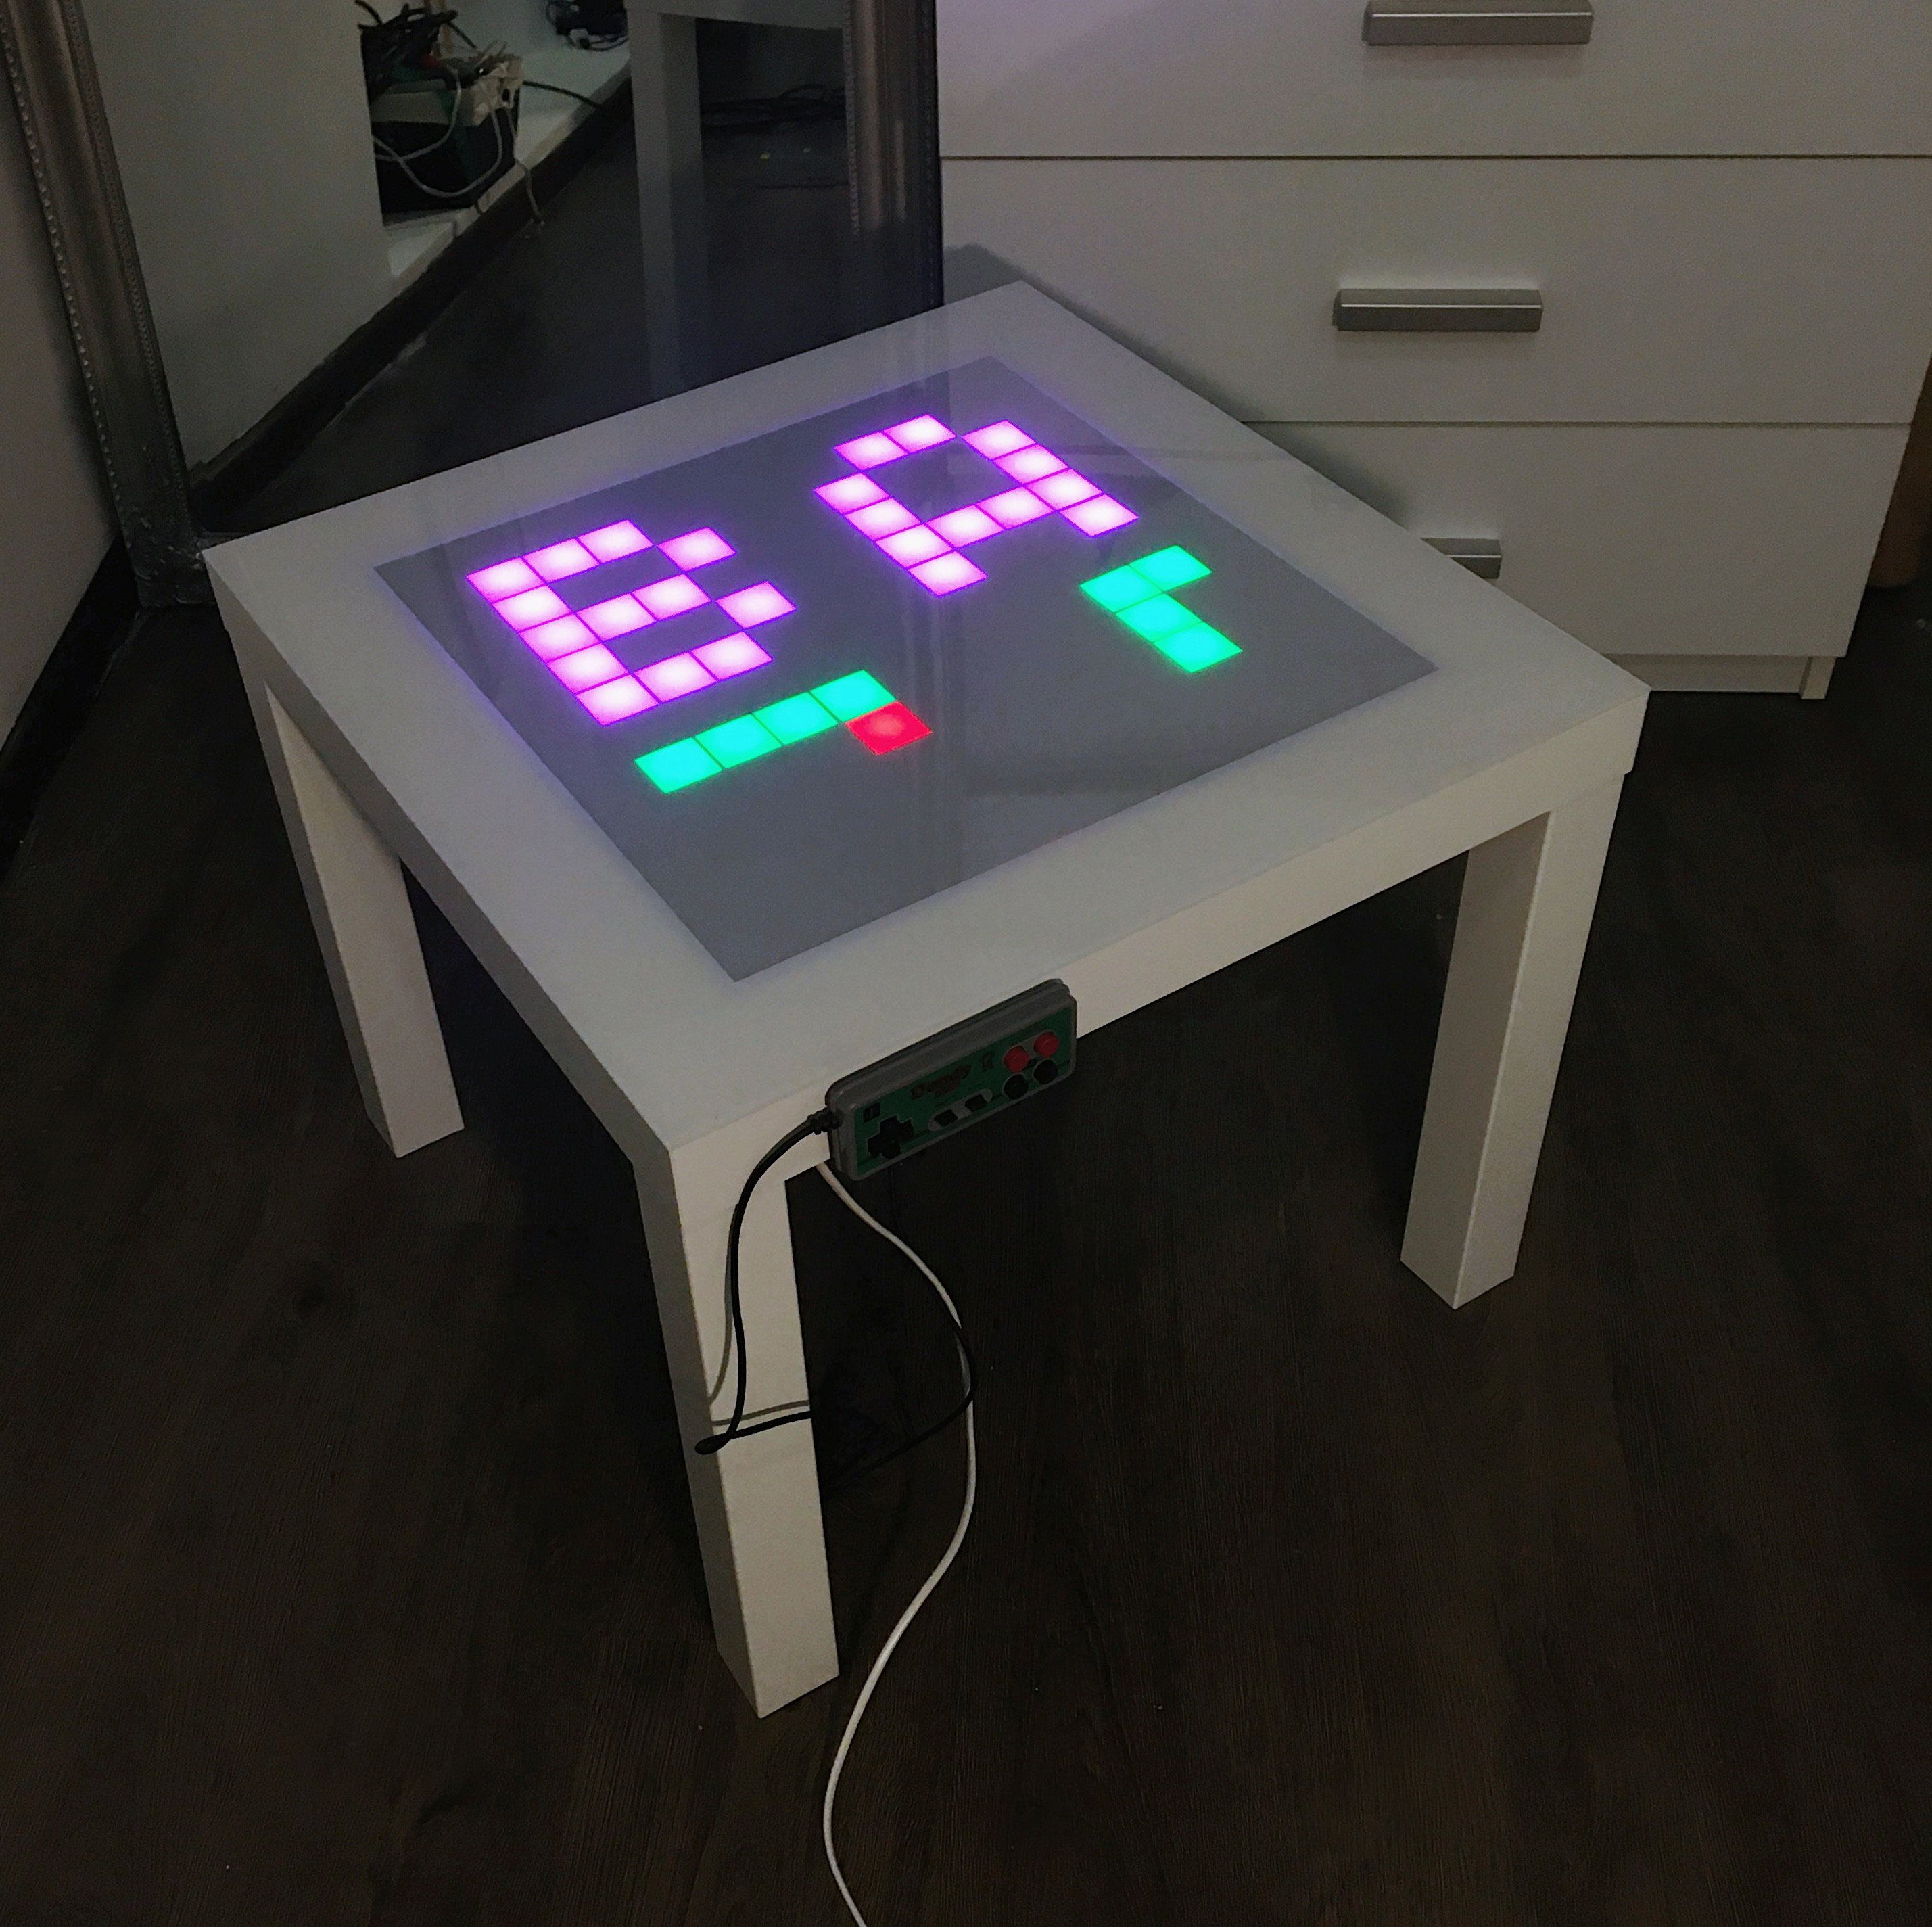 Led Coffee Table With Retro Games Table With Games Game Etsy Interactive Table Table Games Retro Games Console [ 2849 x 2857 Pixel ]